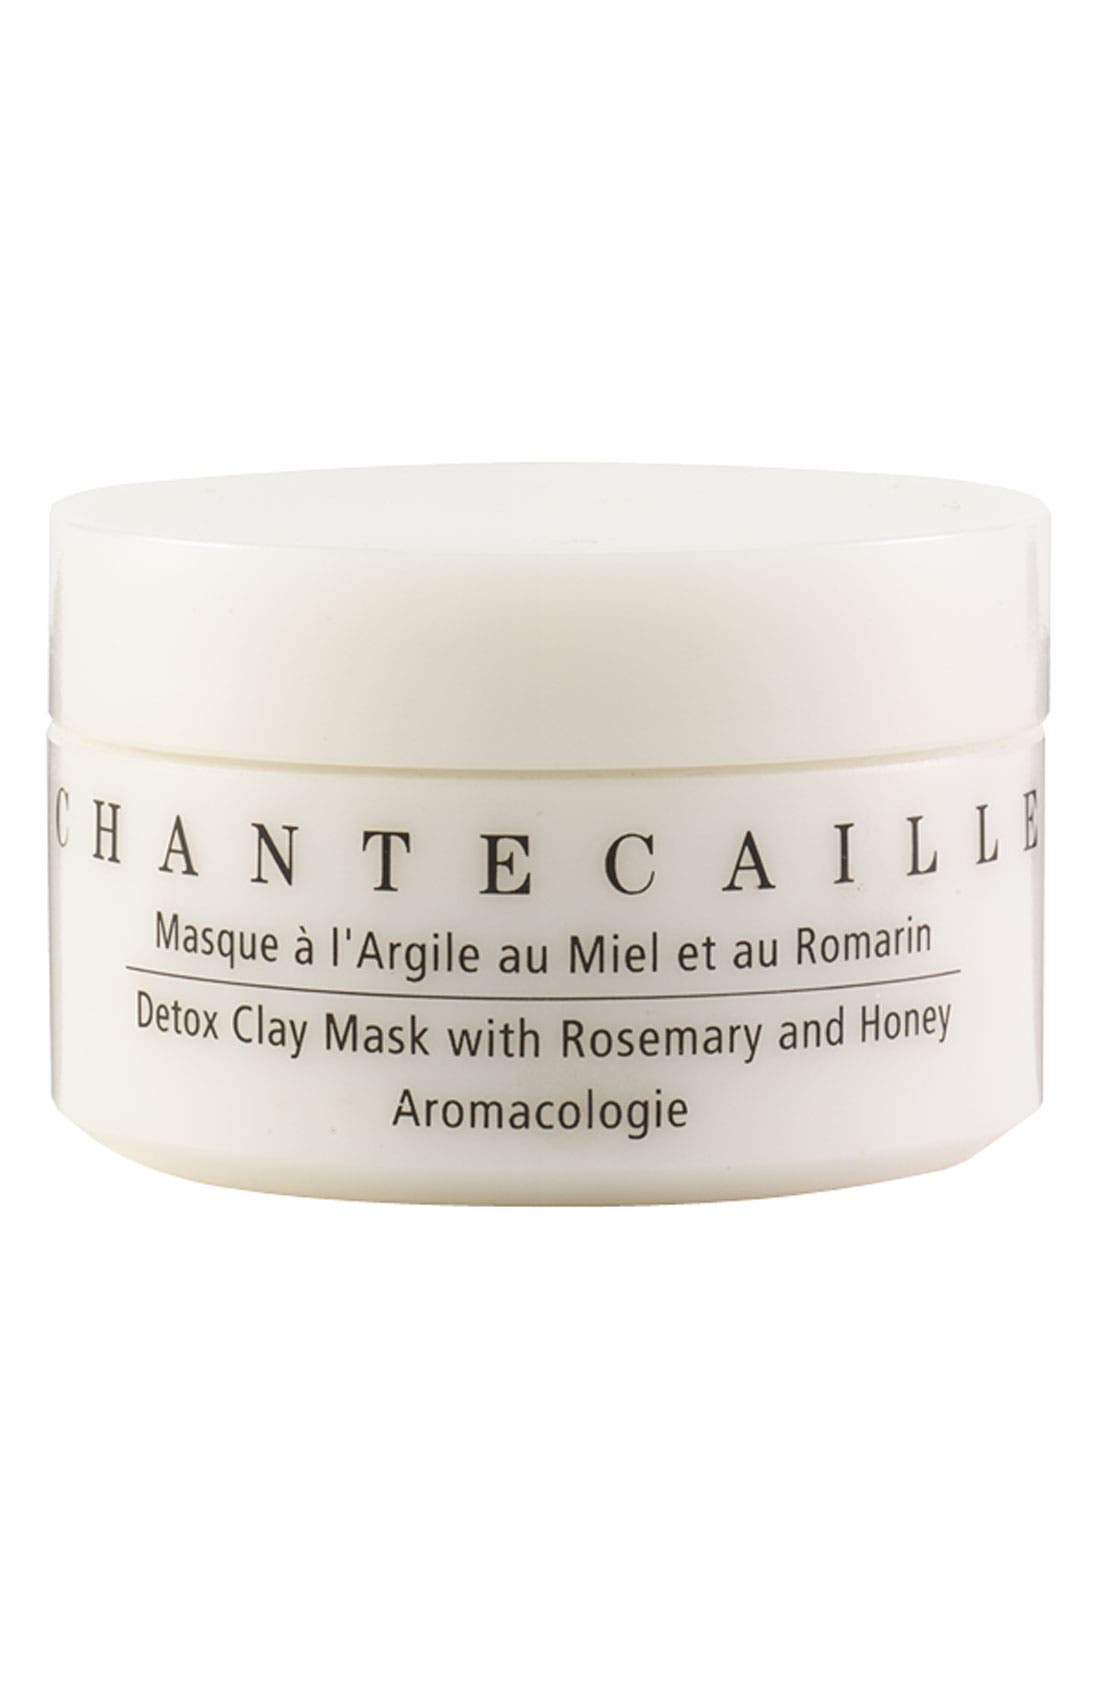 Chantecaille Detox Clay Mask with Rosemary & Honey